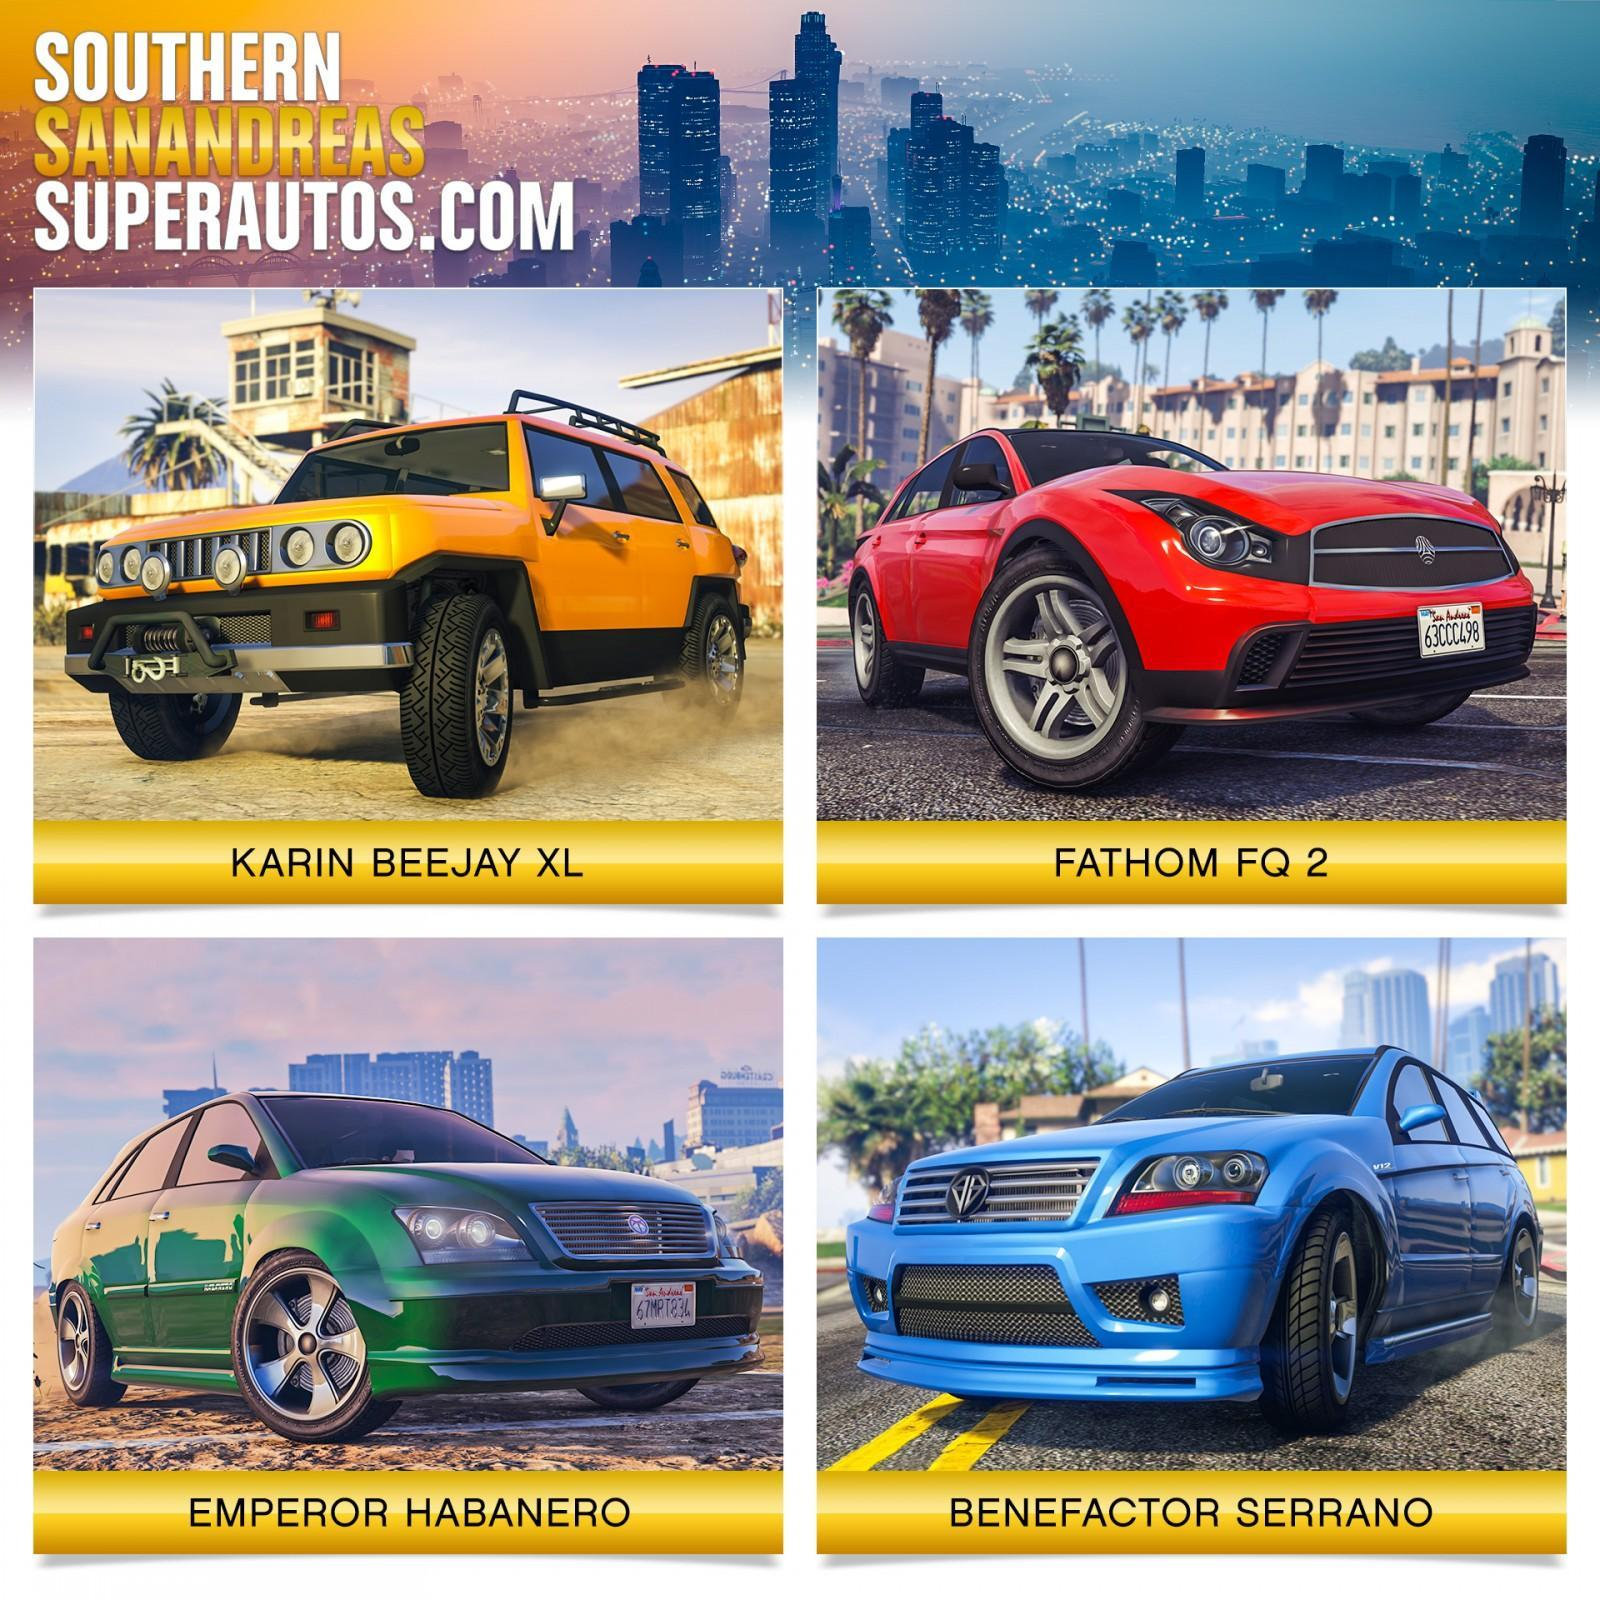 GTA Online: Southern San Andreas Super Autos Inventory Update & More